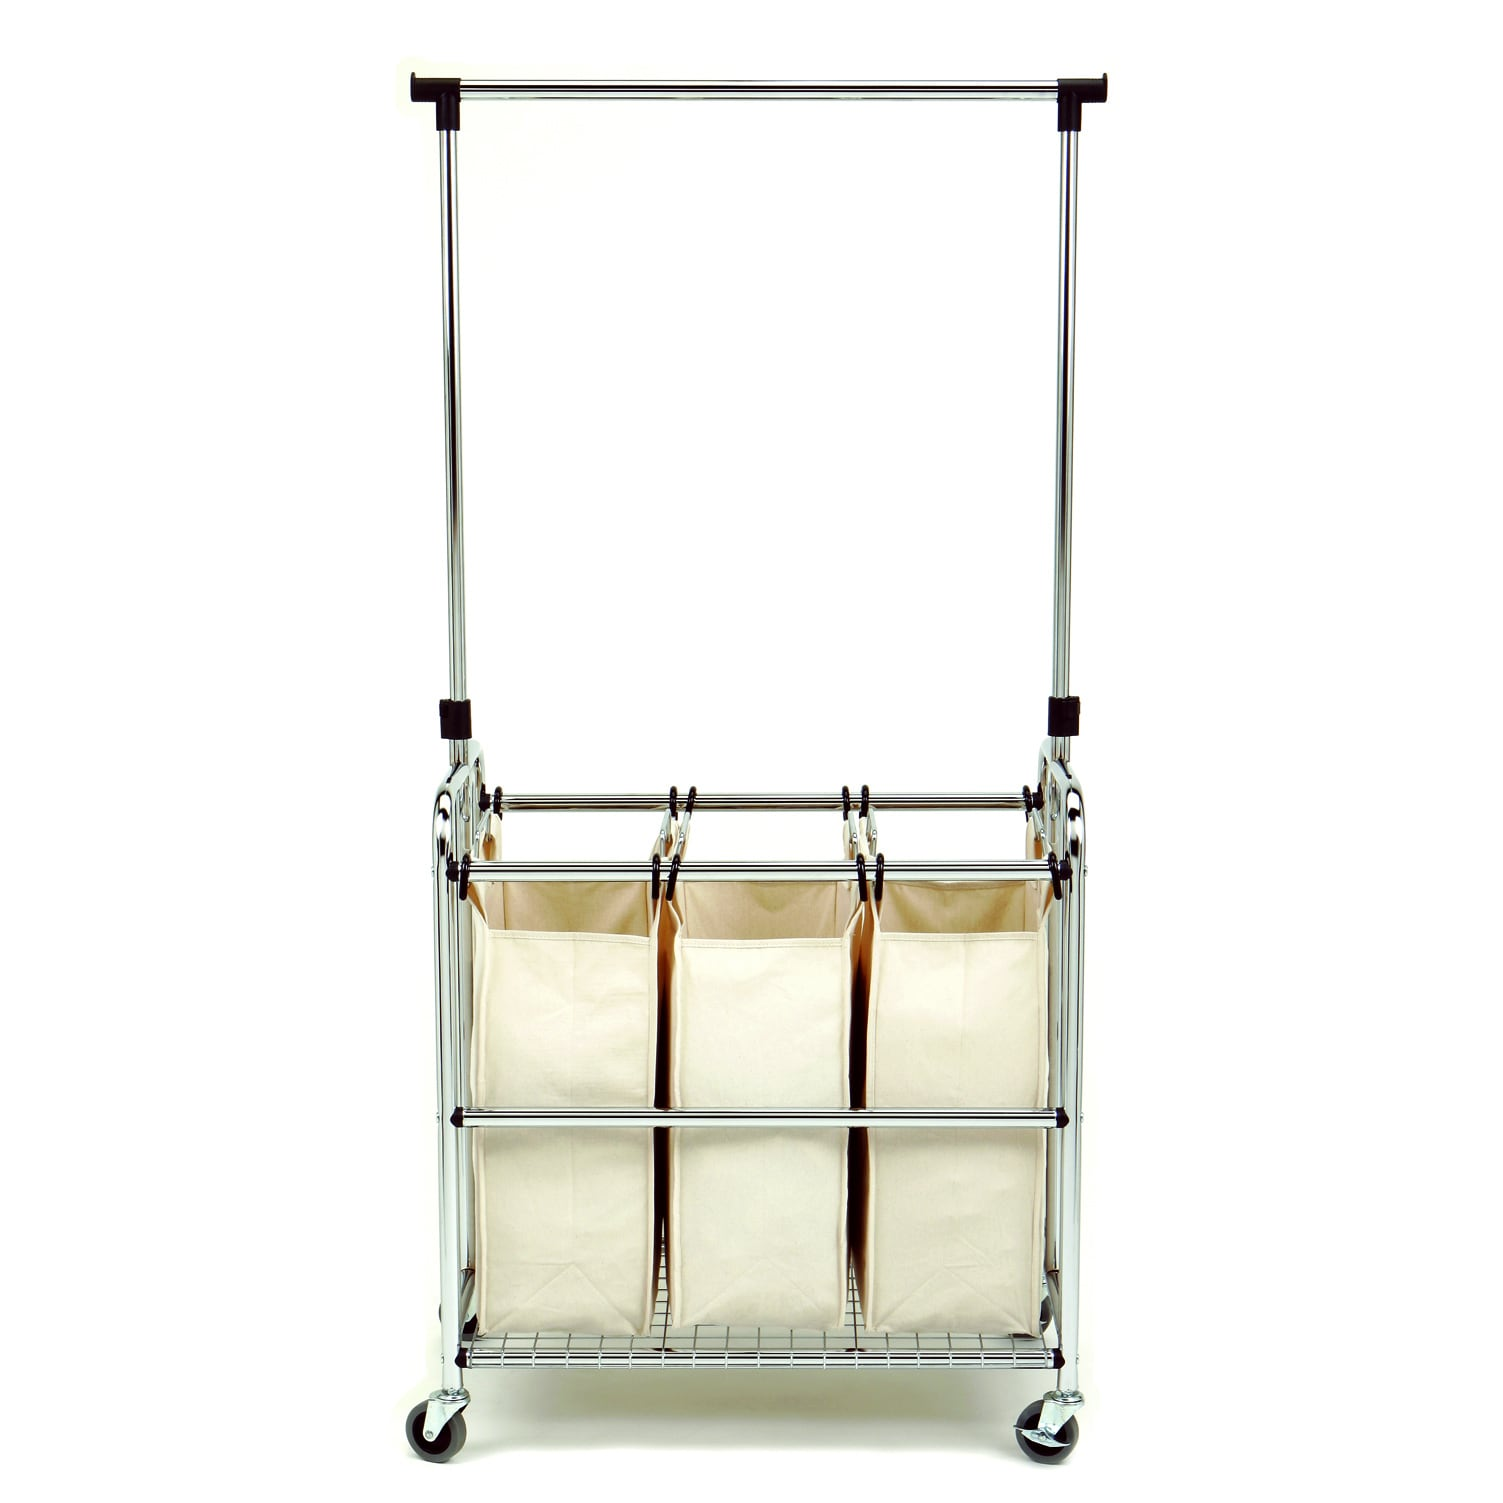 Seville Classics 3-bag Laundry Sorter with Hanging Bar (3...